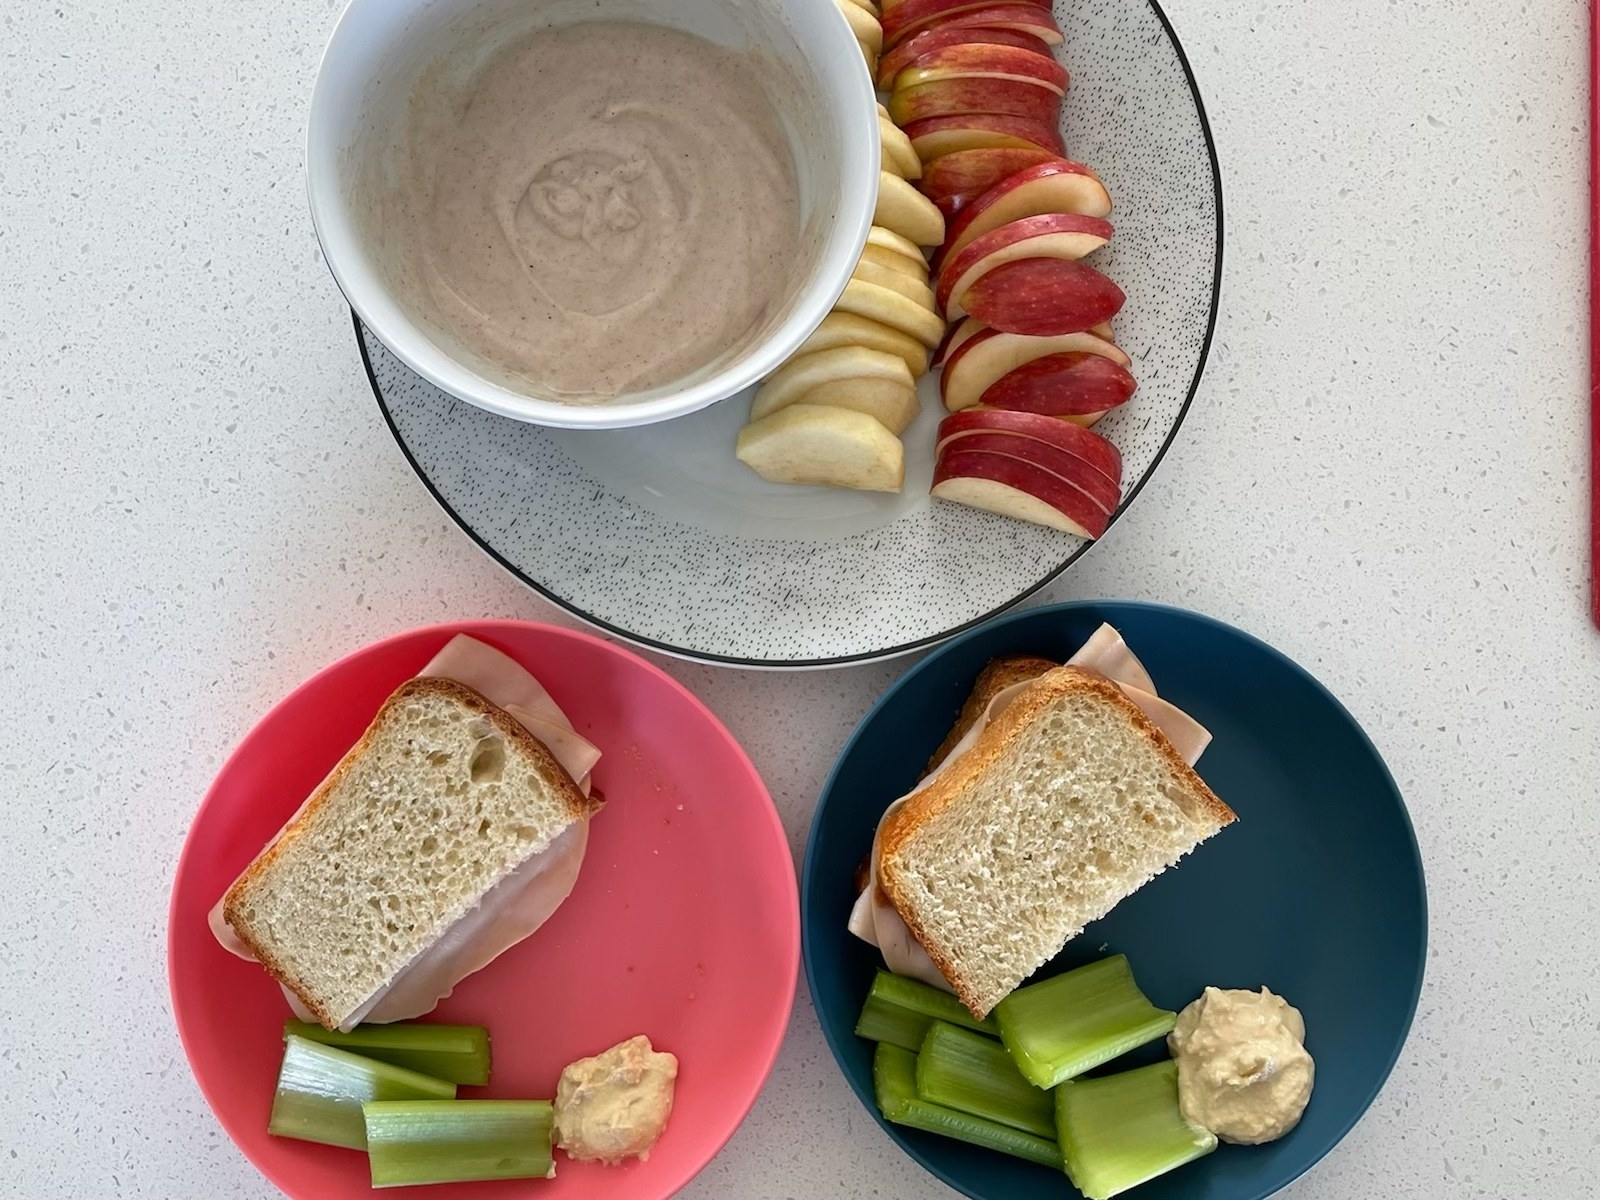 Turkey sandwiches plated with veggies and hummus